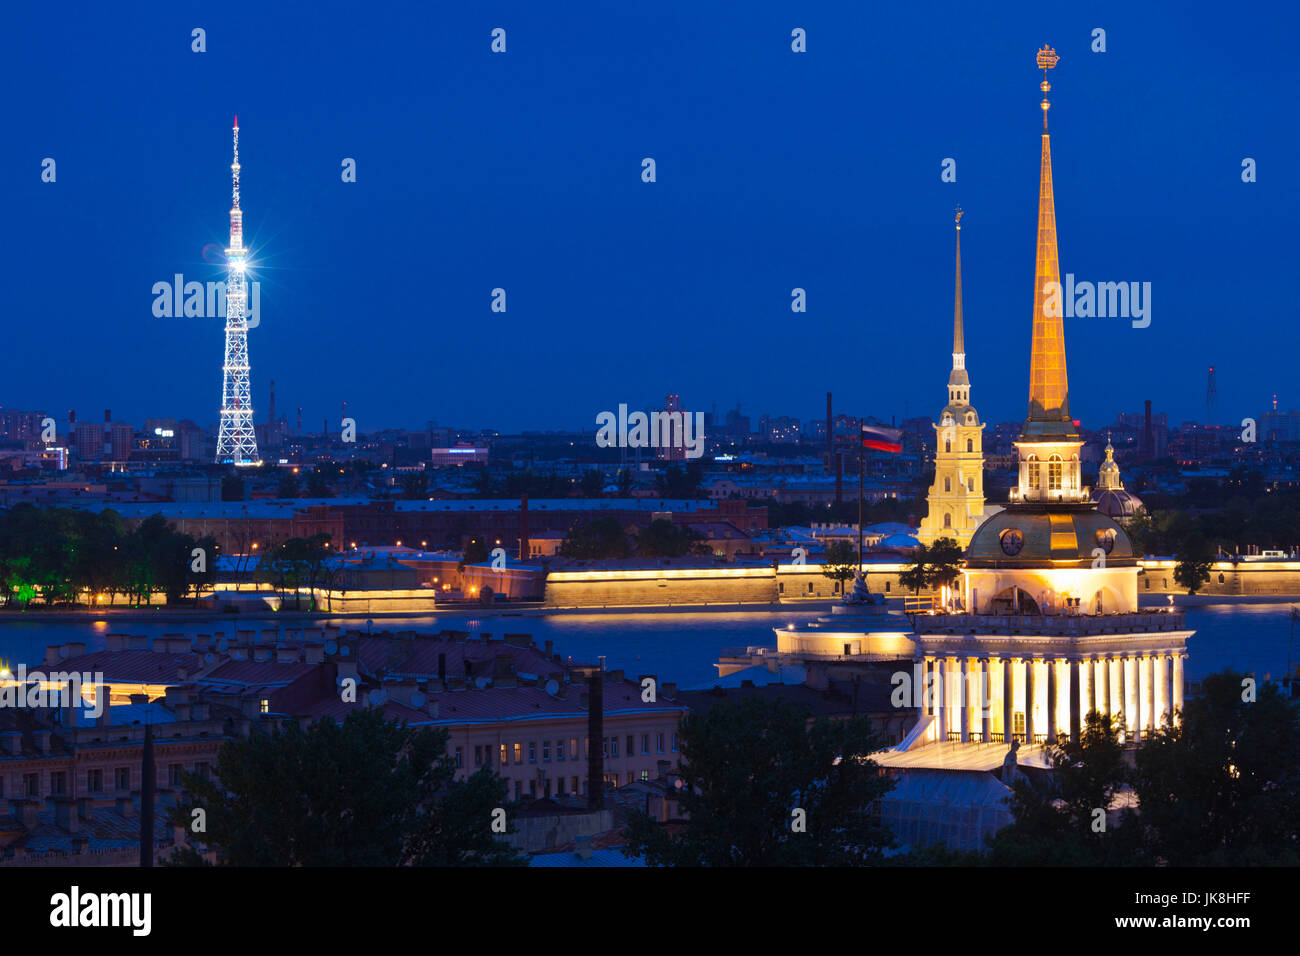 Russia, Saint Petersburg, Center, elevated view of the Television Tower, Peter and Paul Fortress, and the Admiralty - Stock Image